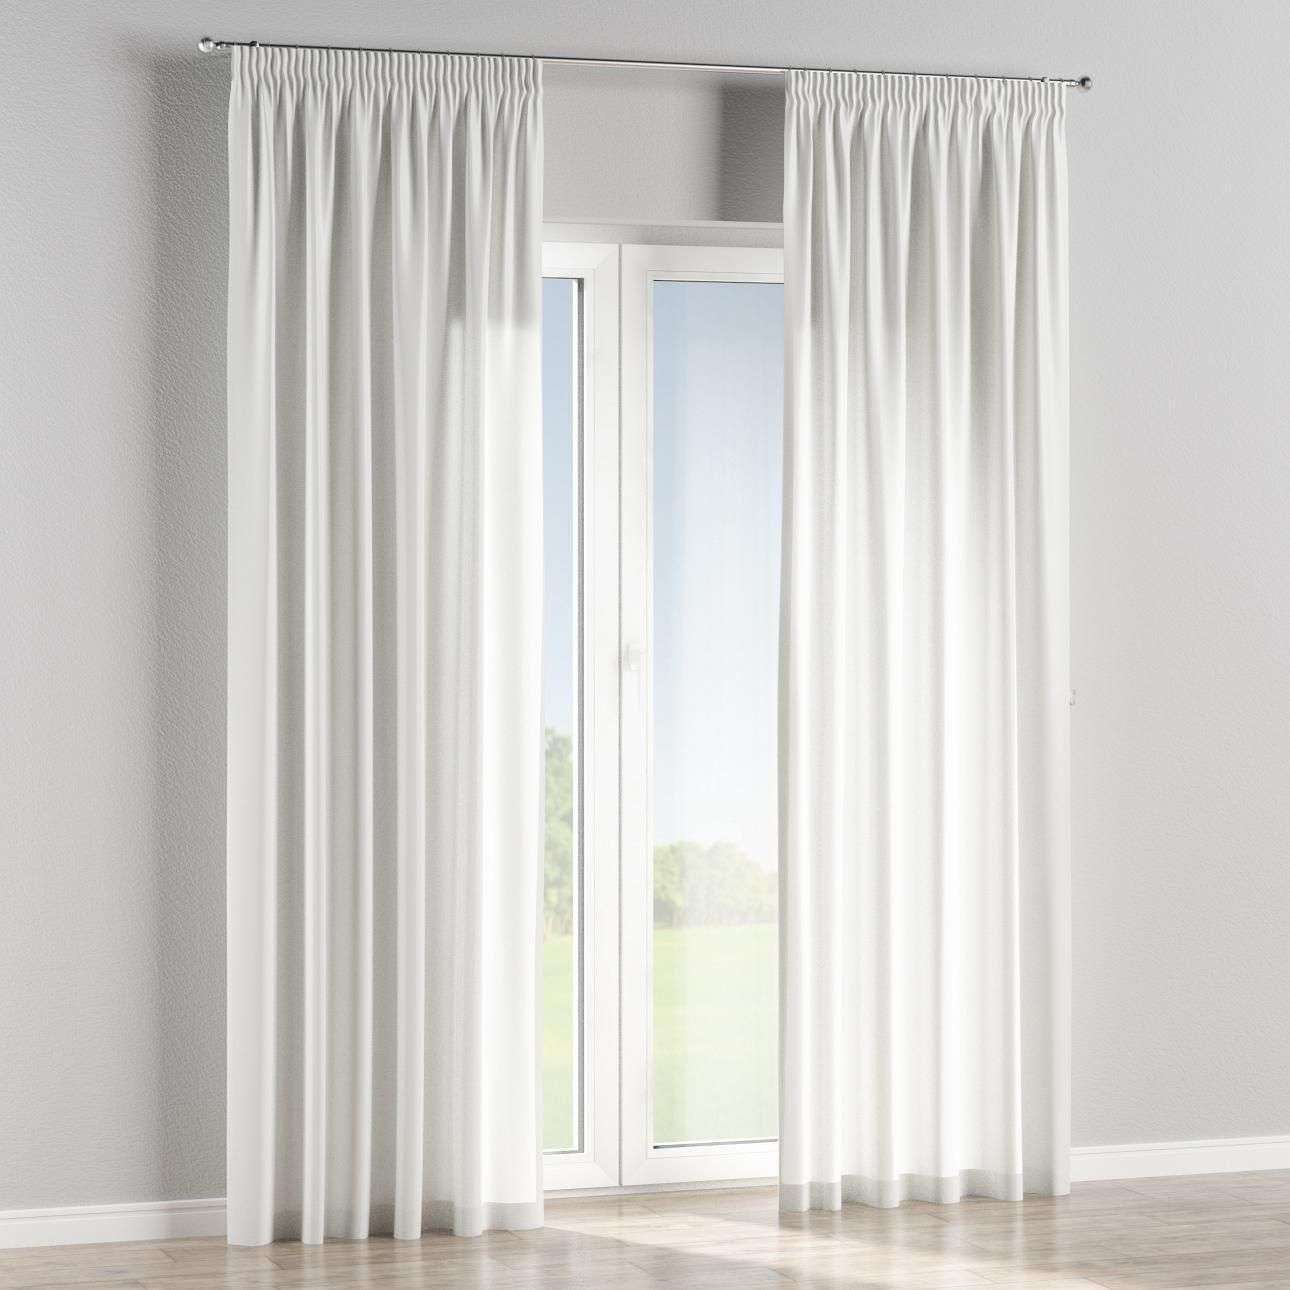 Pencil pleat curtains in collection Amelie , fabric: 136-75